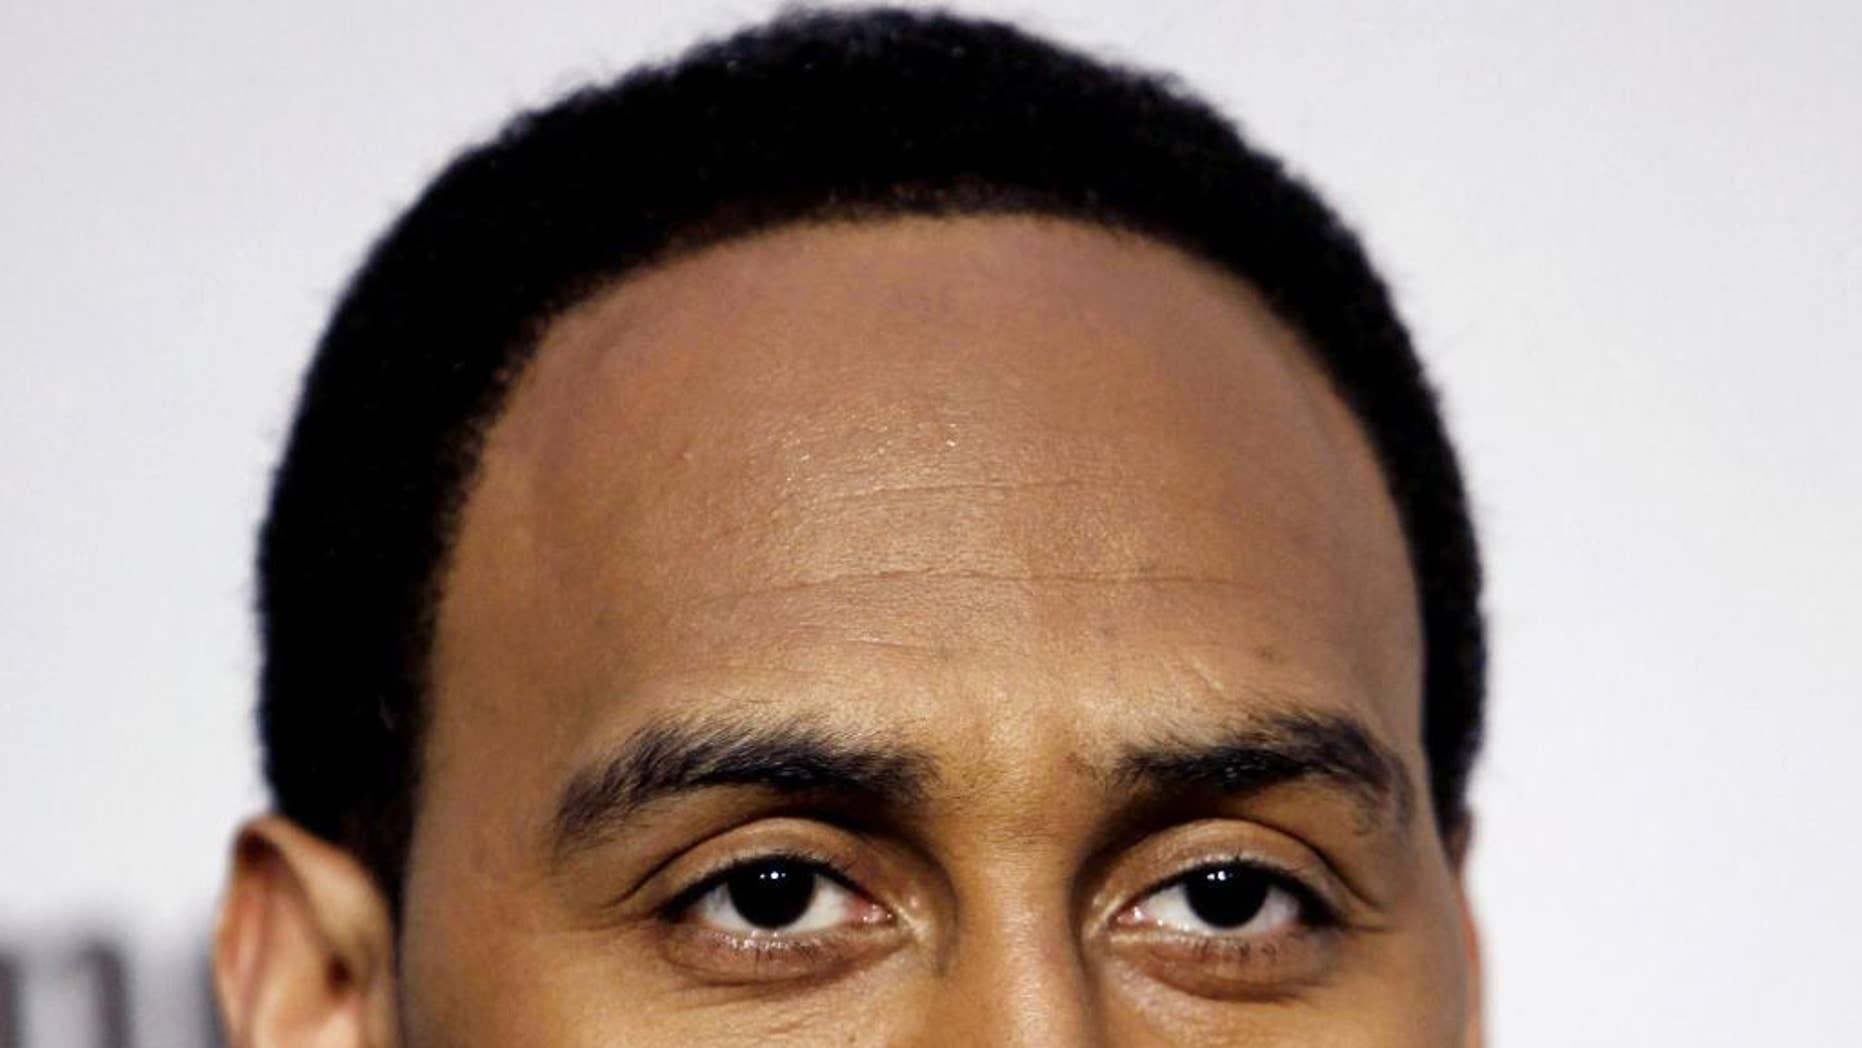 FILE - In this Saturday, Dec. 12, 2009 file photo, Stephen A. Smith arrives at Spike TV's Video Game Awards in Los Angeles. ESPN says it has suspended sportscaster Stephen A. Smith, Tuesday, July 29, 2014 for a week because of comments about domestic abuse suggesting women should make sure they don't provoke attacks.  (AP Photo/Matt Sayles, File)